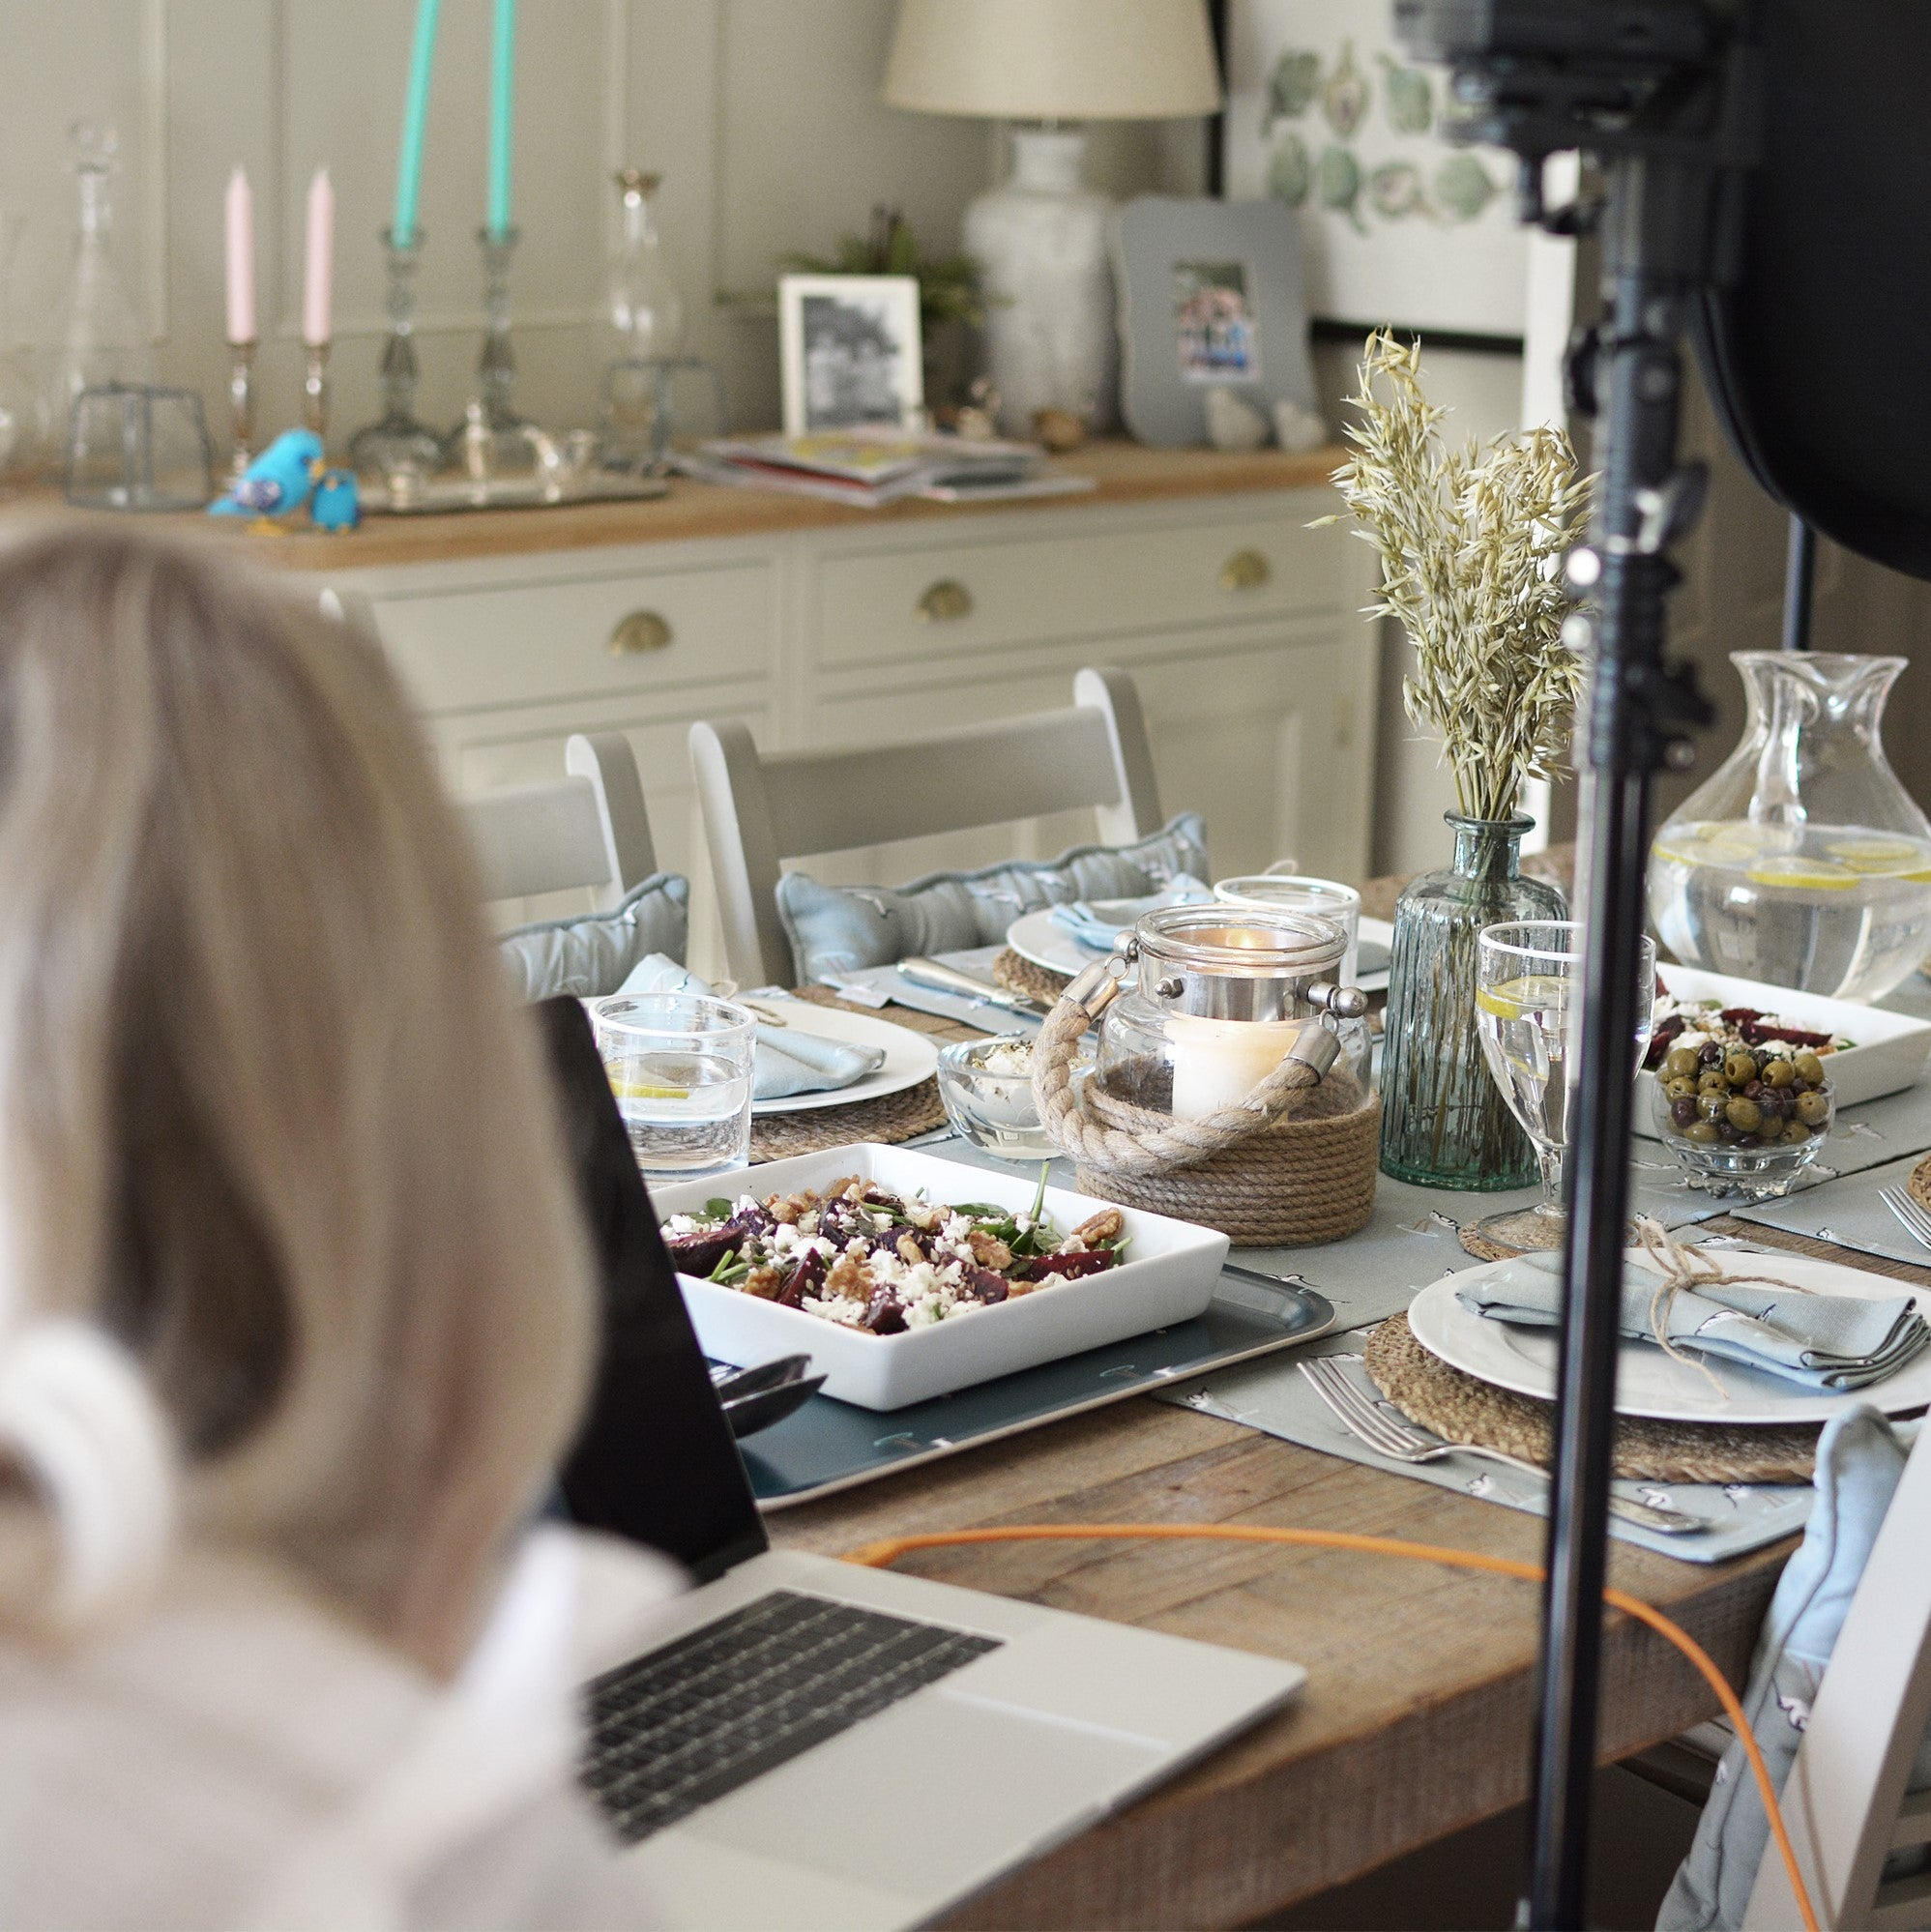 We step behind the scenes at Sophie Allports new coastal collection which features Avocets on a sea-blue background. We see our photographer capturing a coastal table setting.